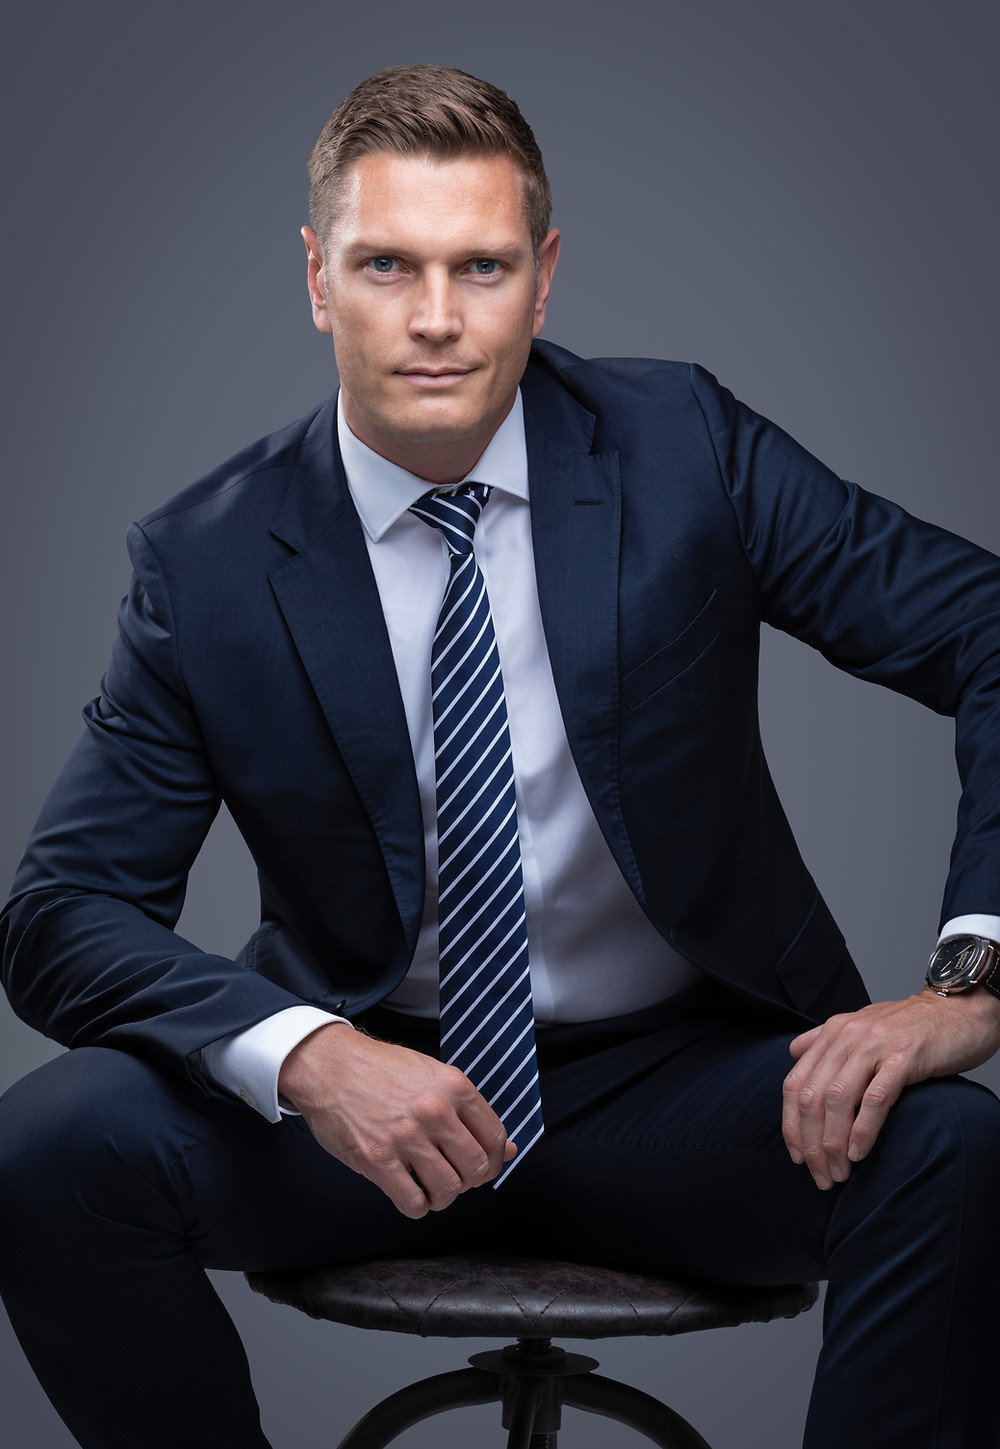 Corporate Headshot of a man in a suit in Dubai